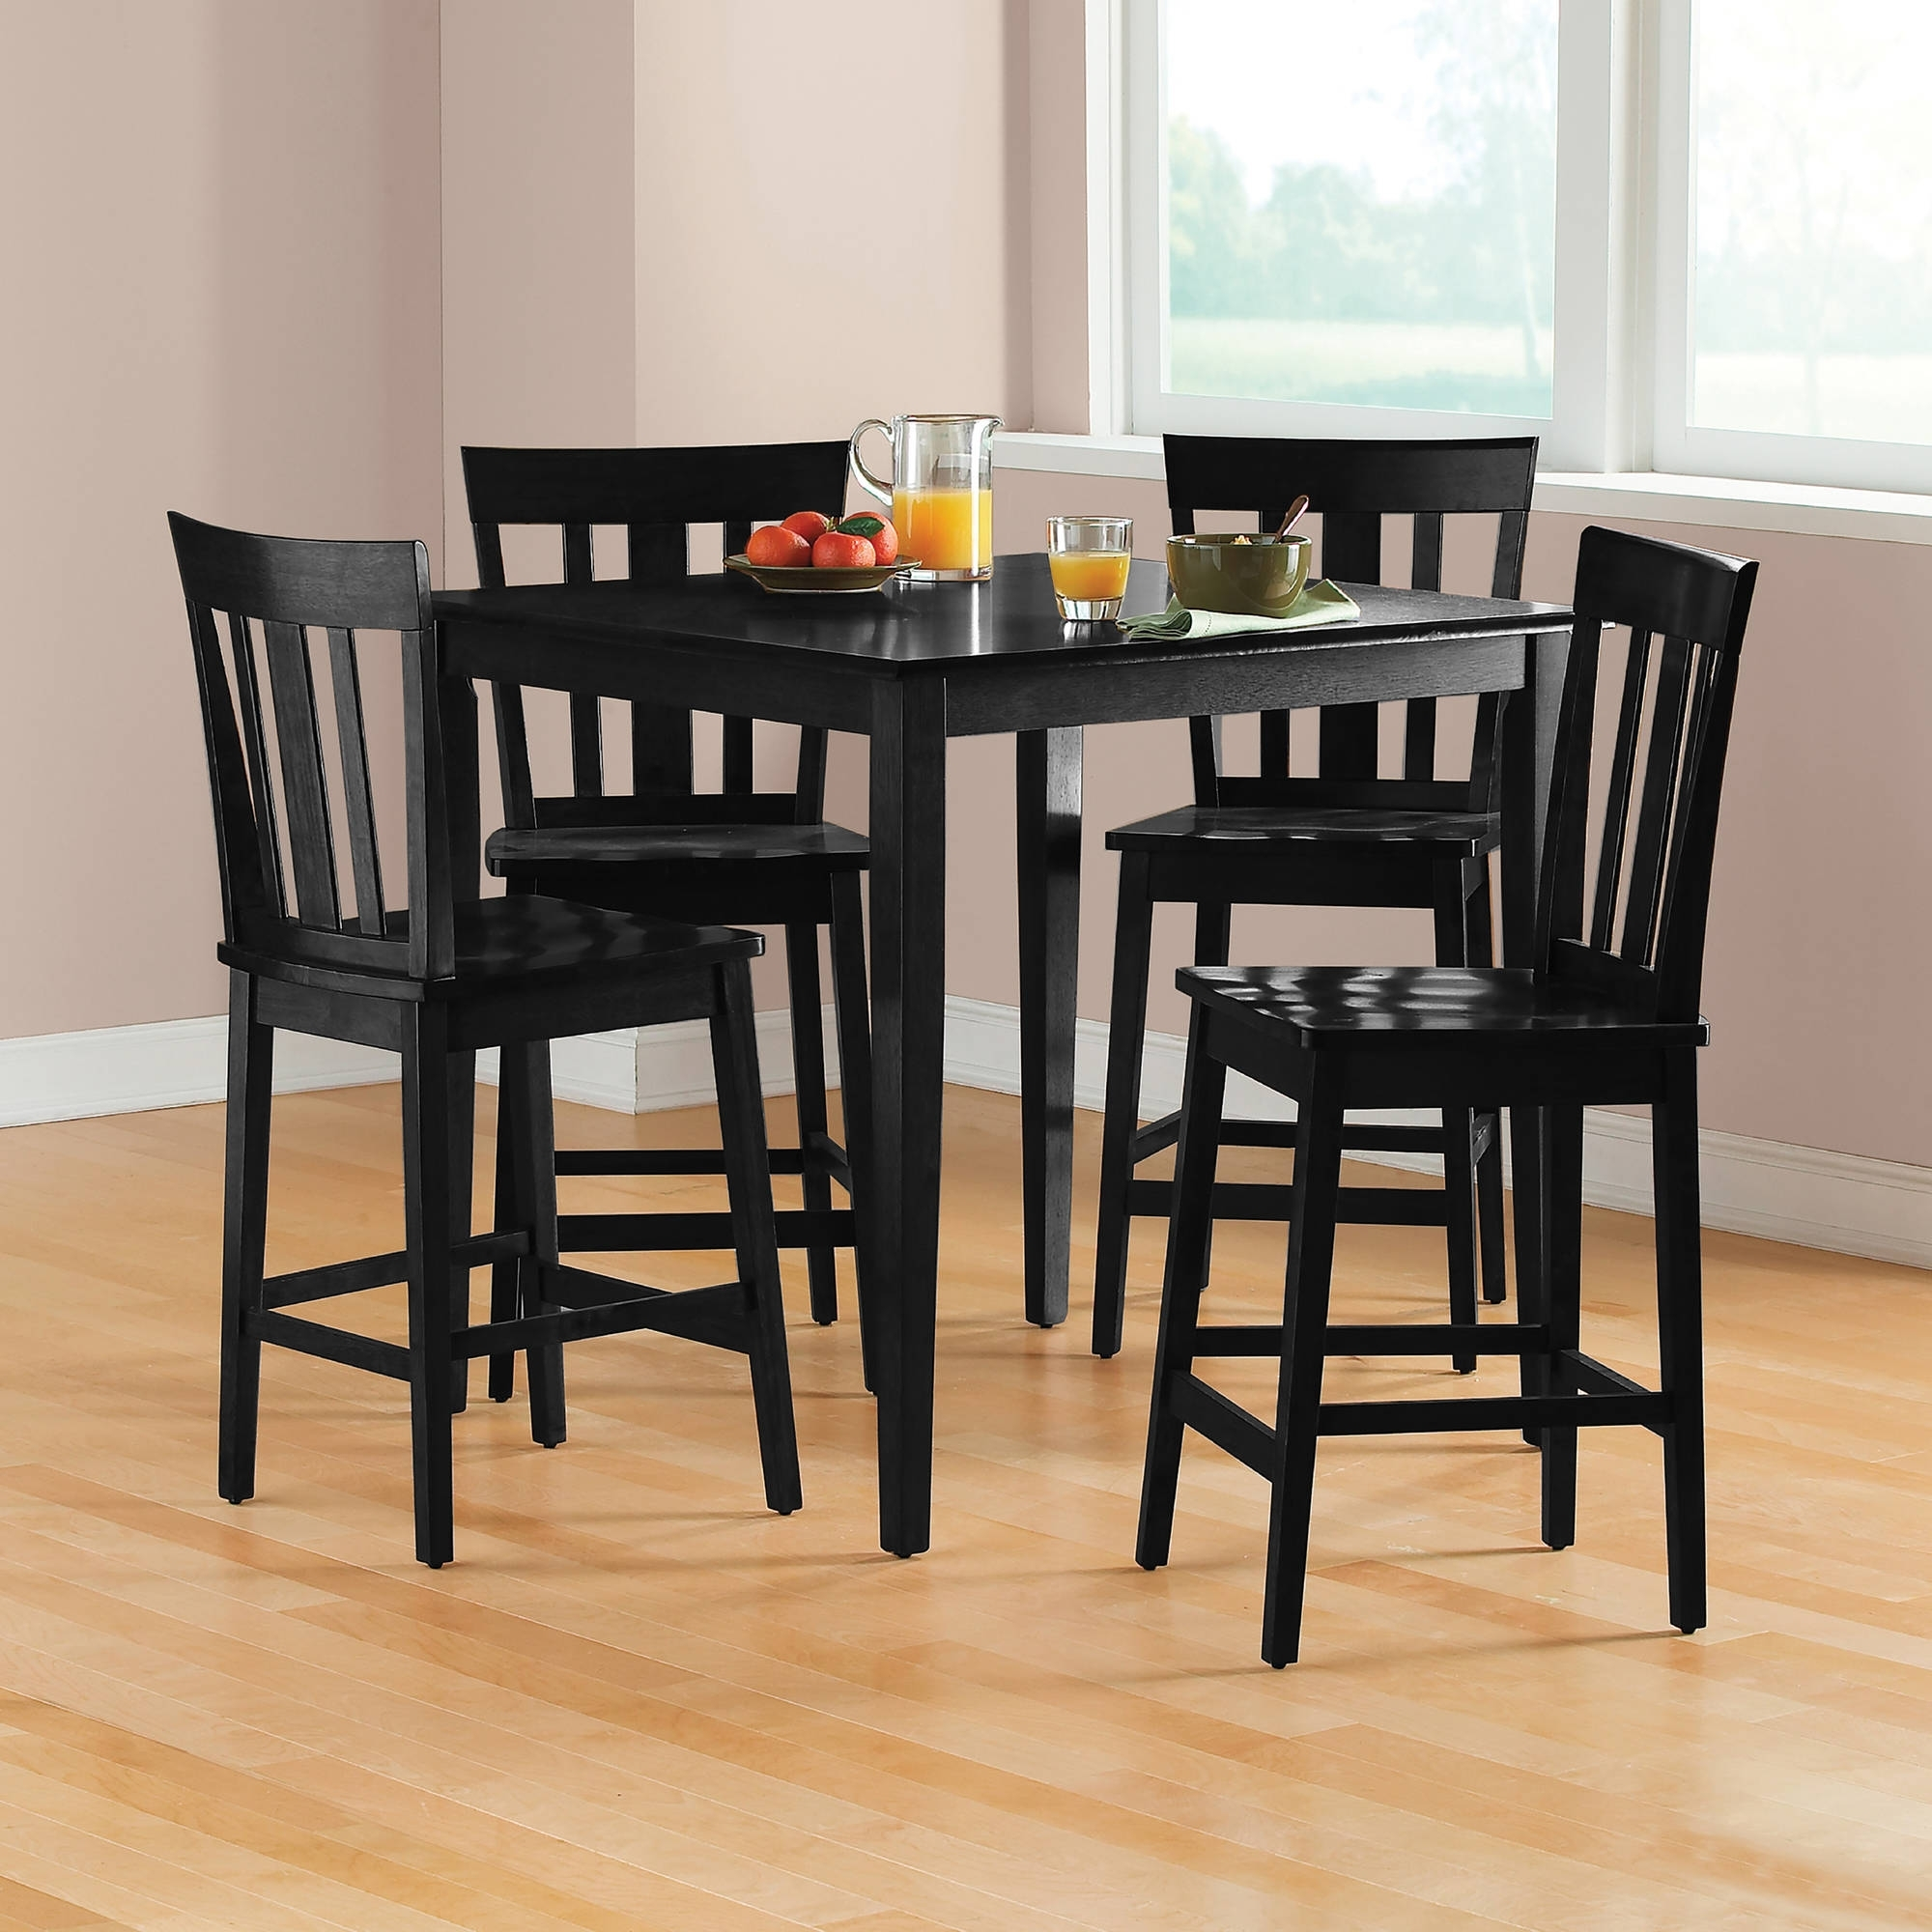 Best And Newest Mainstays 5 Piece Mission Counter Height Dining Set – Walmart Regarding Pierce 5 Piece Counter Sets (View 5 of 25)